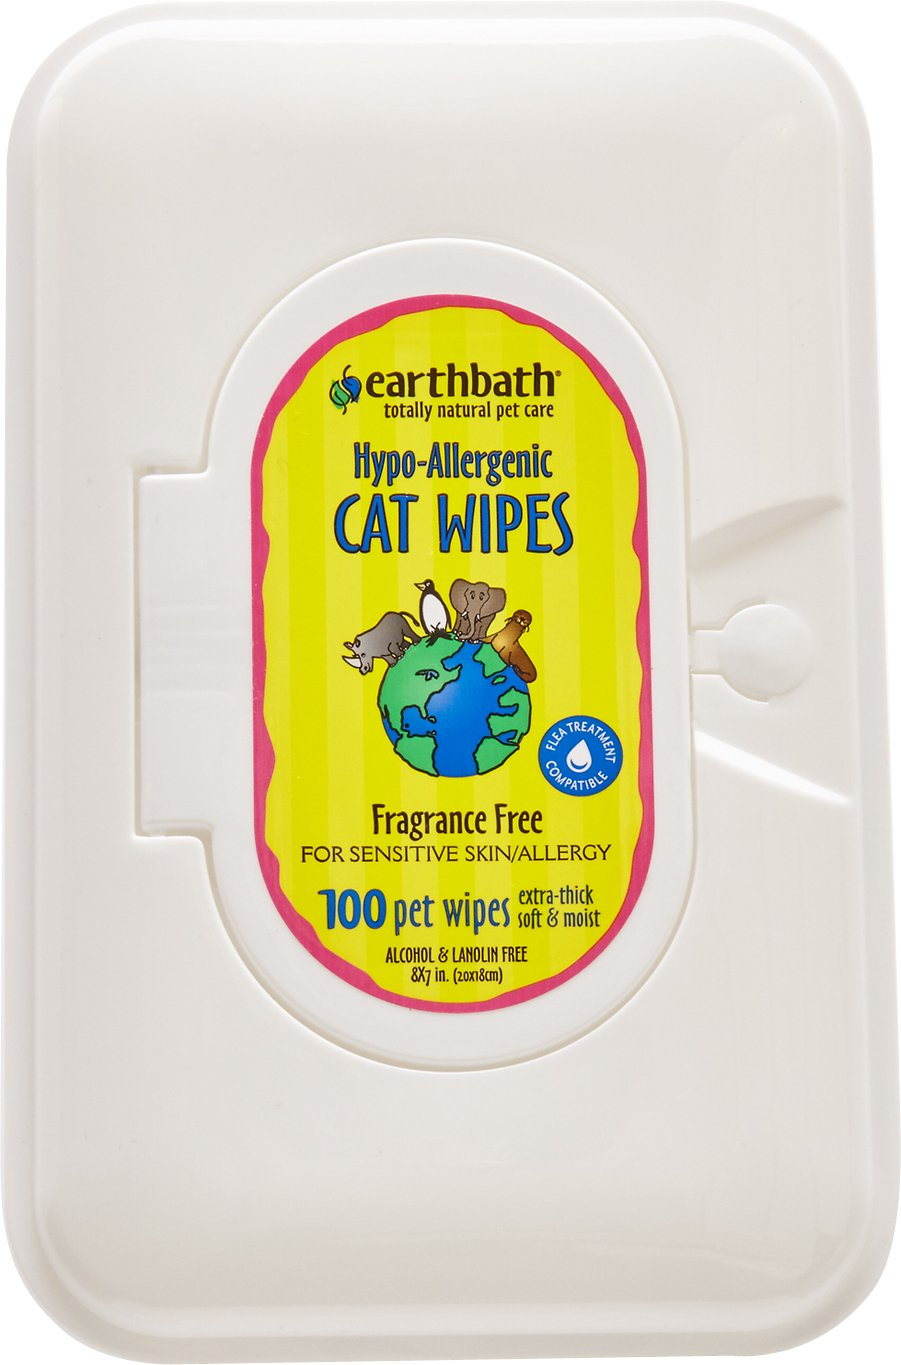 Earthbath Hypo-Allergenic Grooming Wipes for Cats, 100 count Image